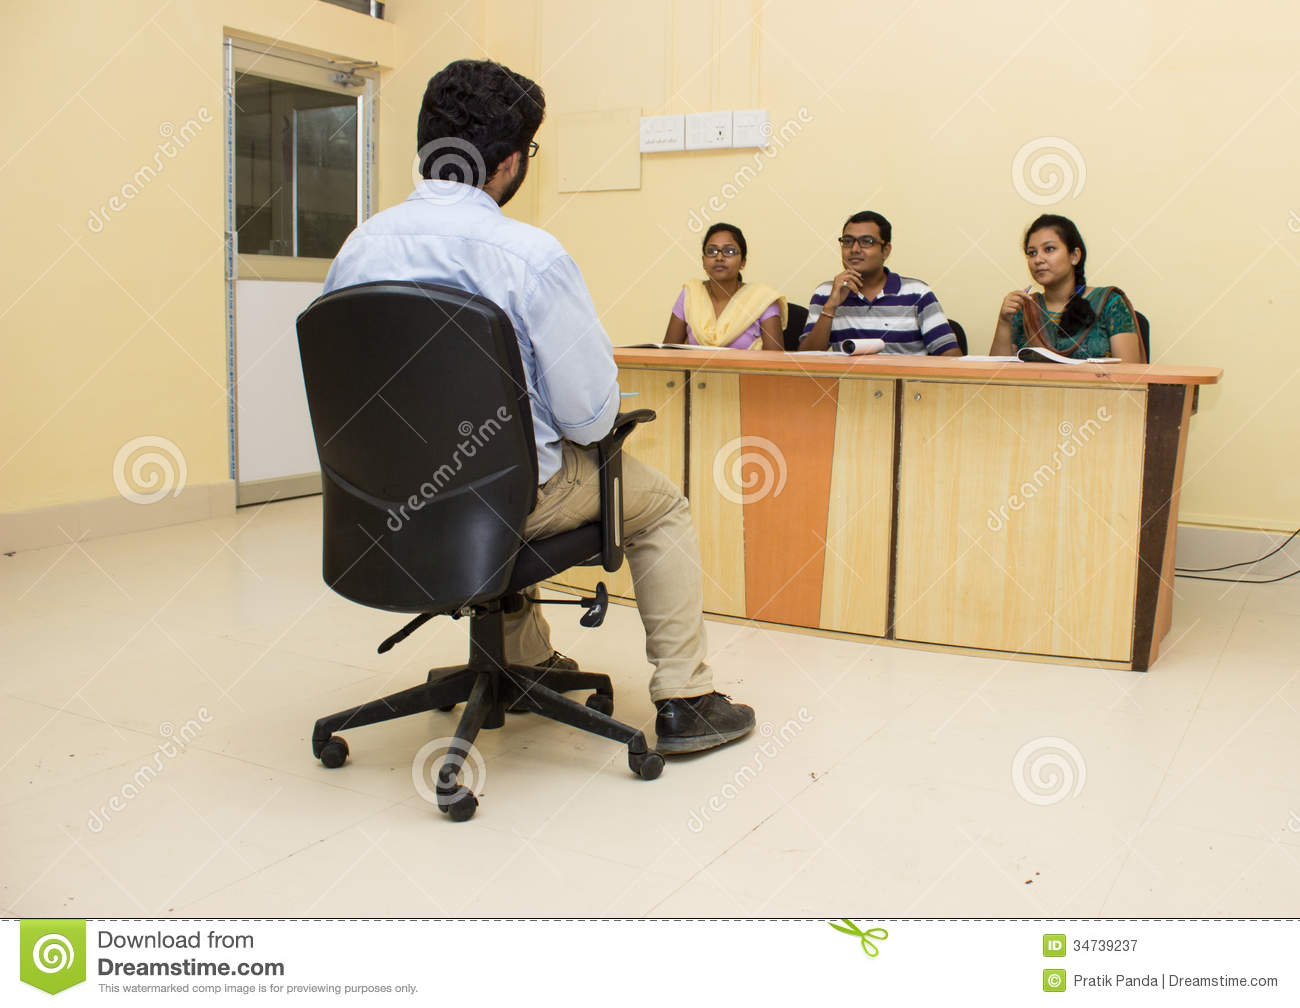 M S Interview Student Room